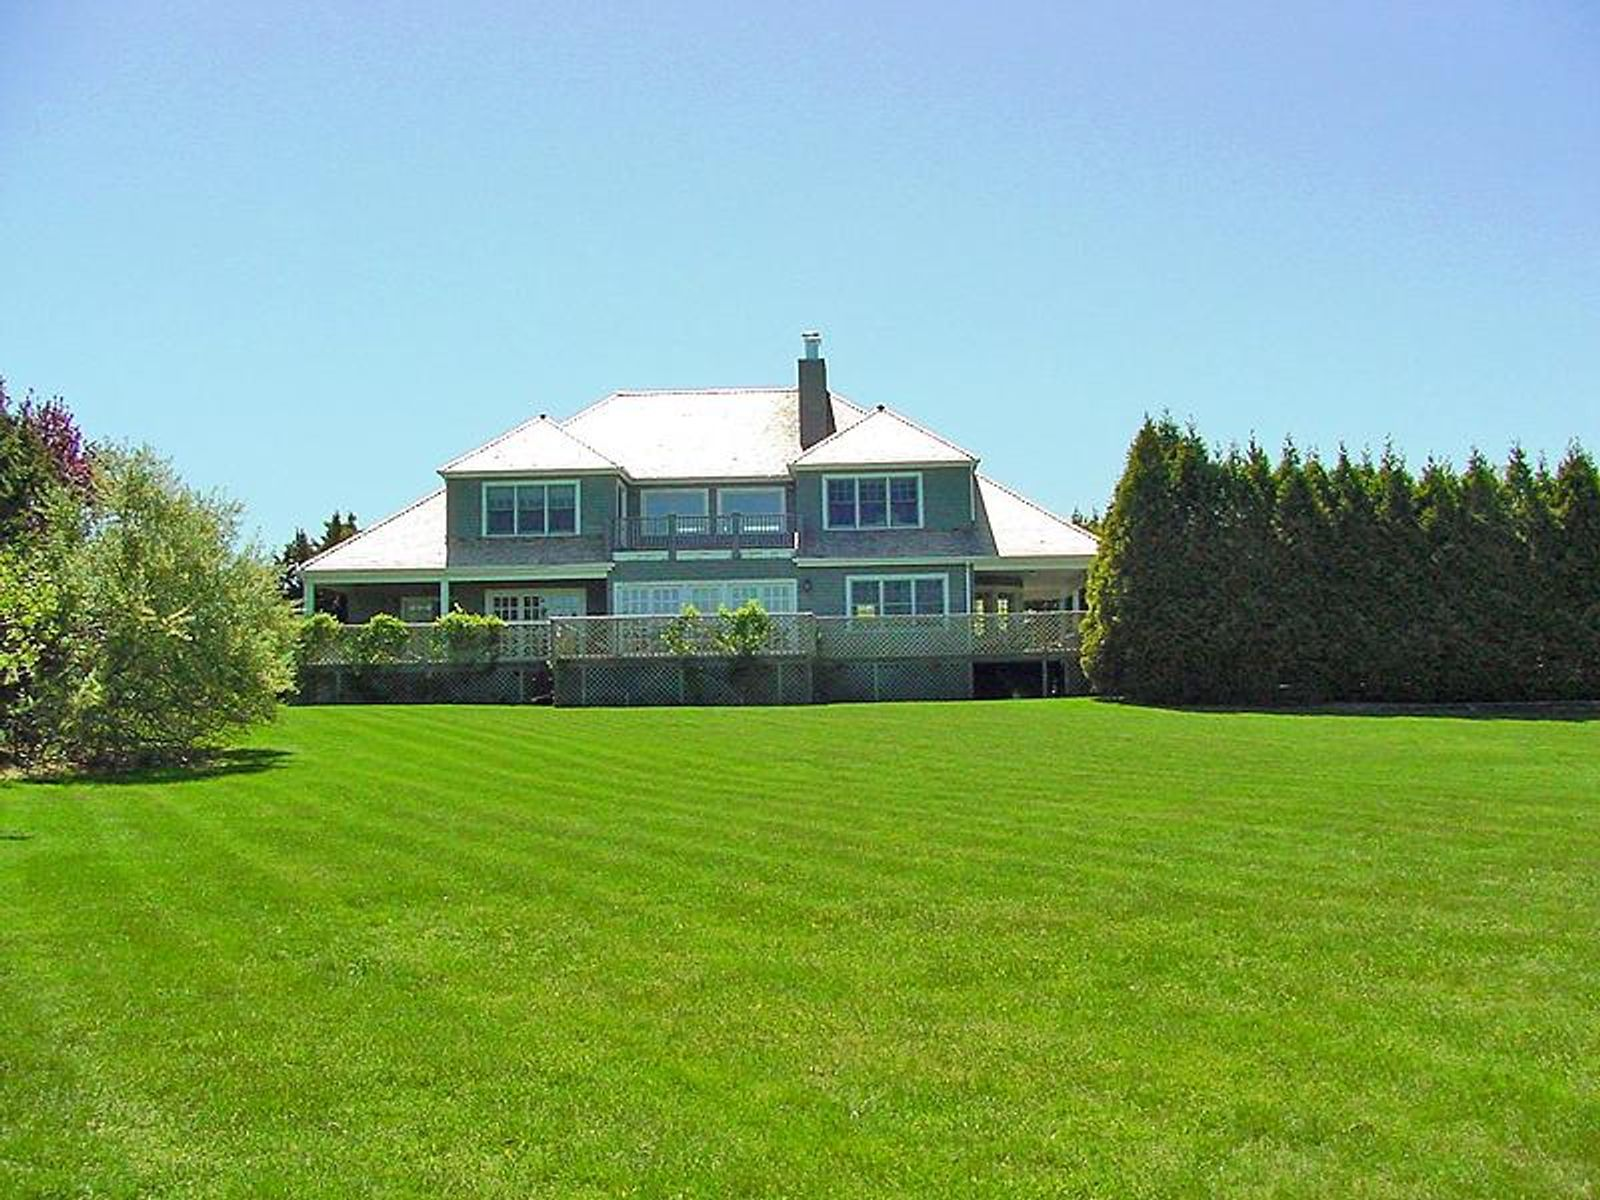 Pondfront North, Sagaponack NY Single Family Home - Hamptons Real Estate